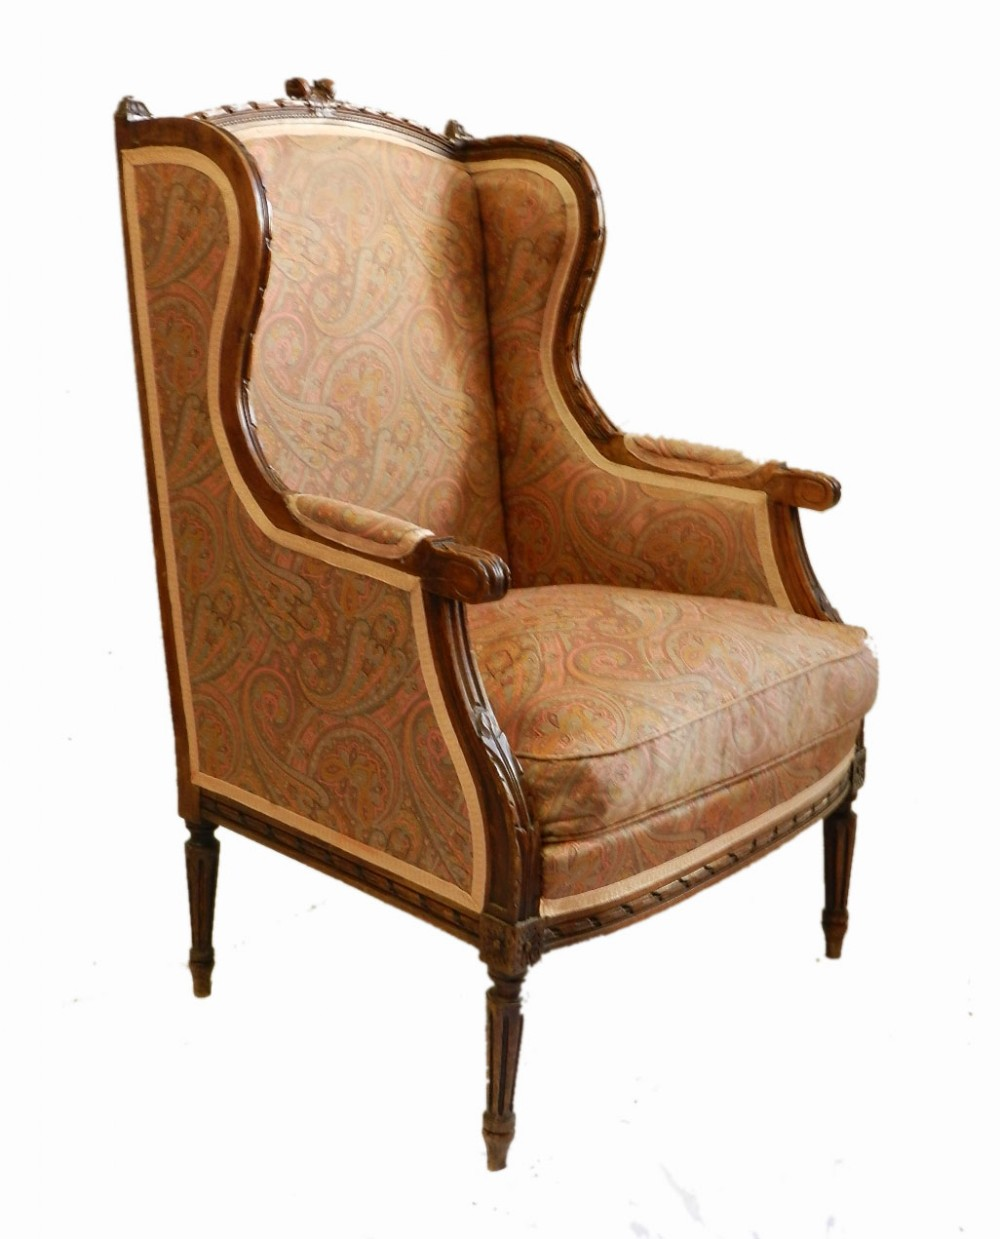 french bergere armchair c19 louis xvi st wing chair 389647. Black Bedroom Furniture Sets. Home Design Ideas